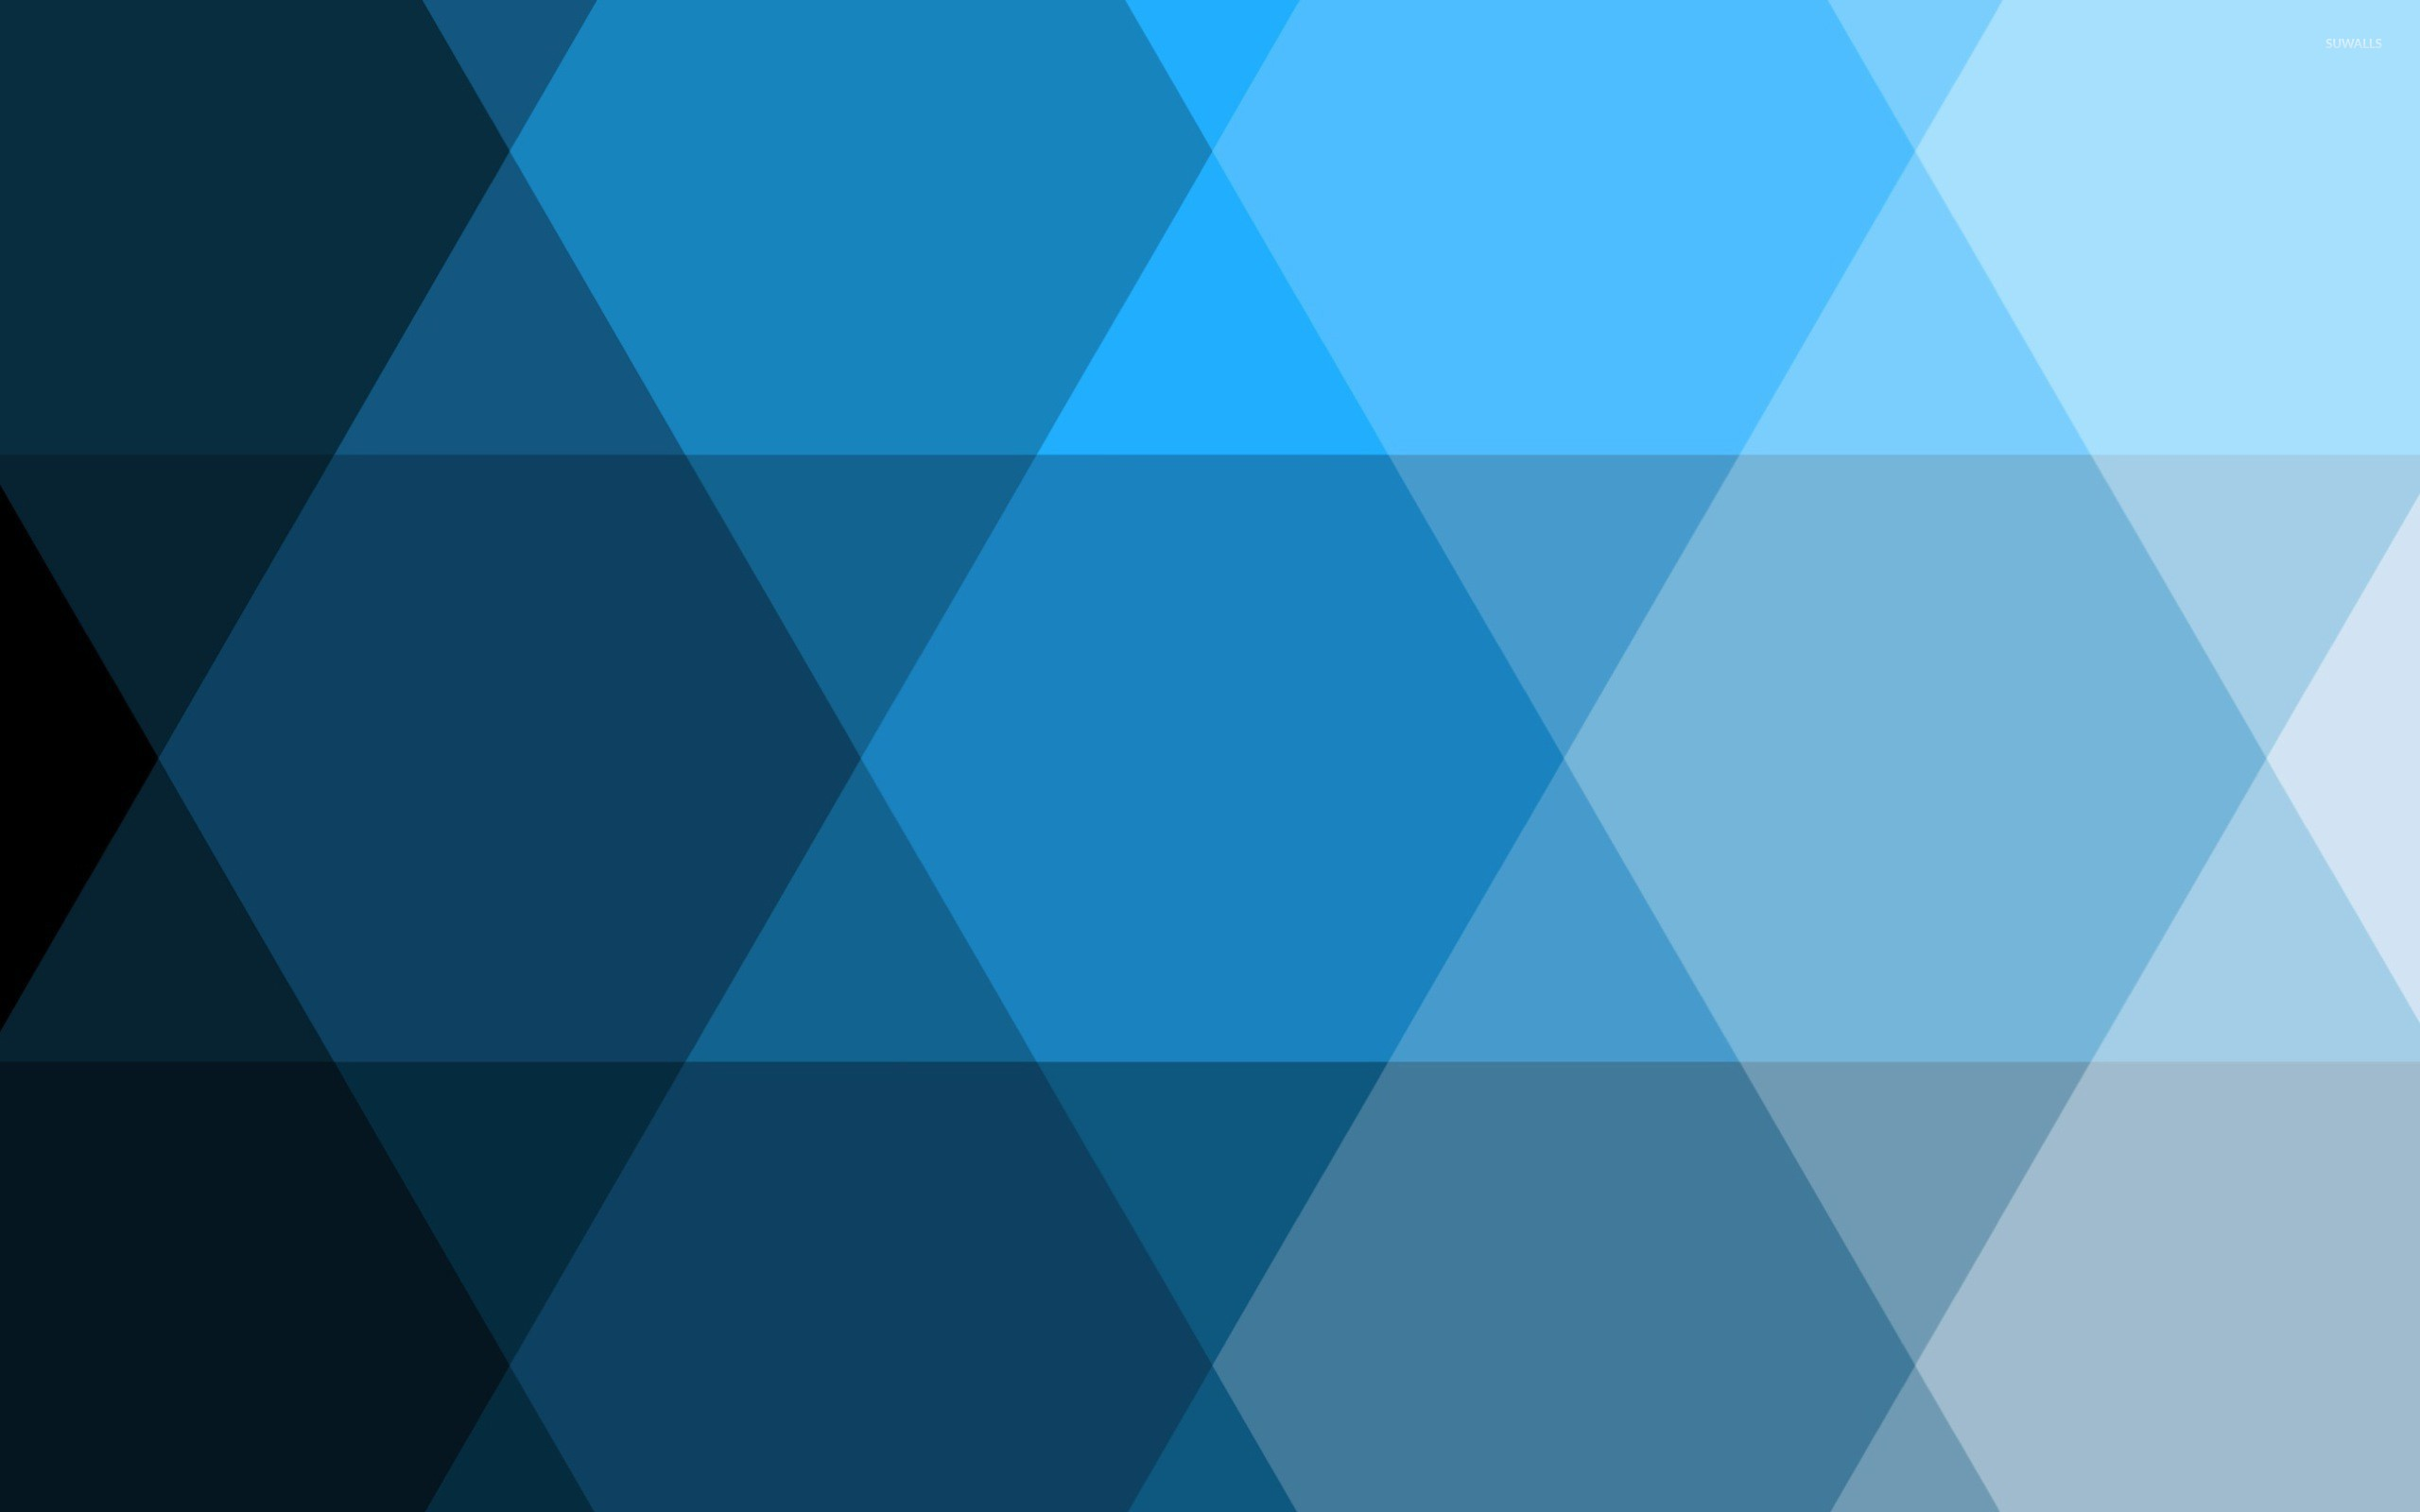 blue geometric wallpaper minimalistic - photo #10